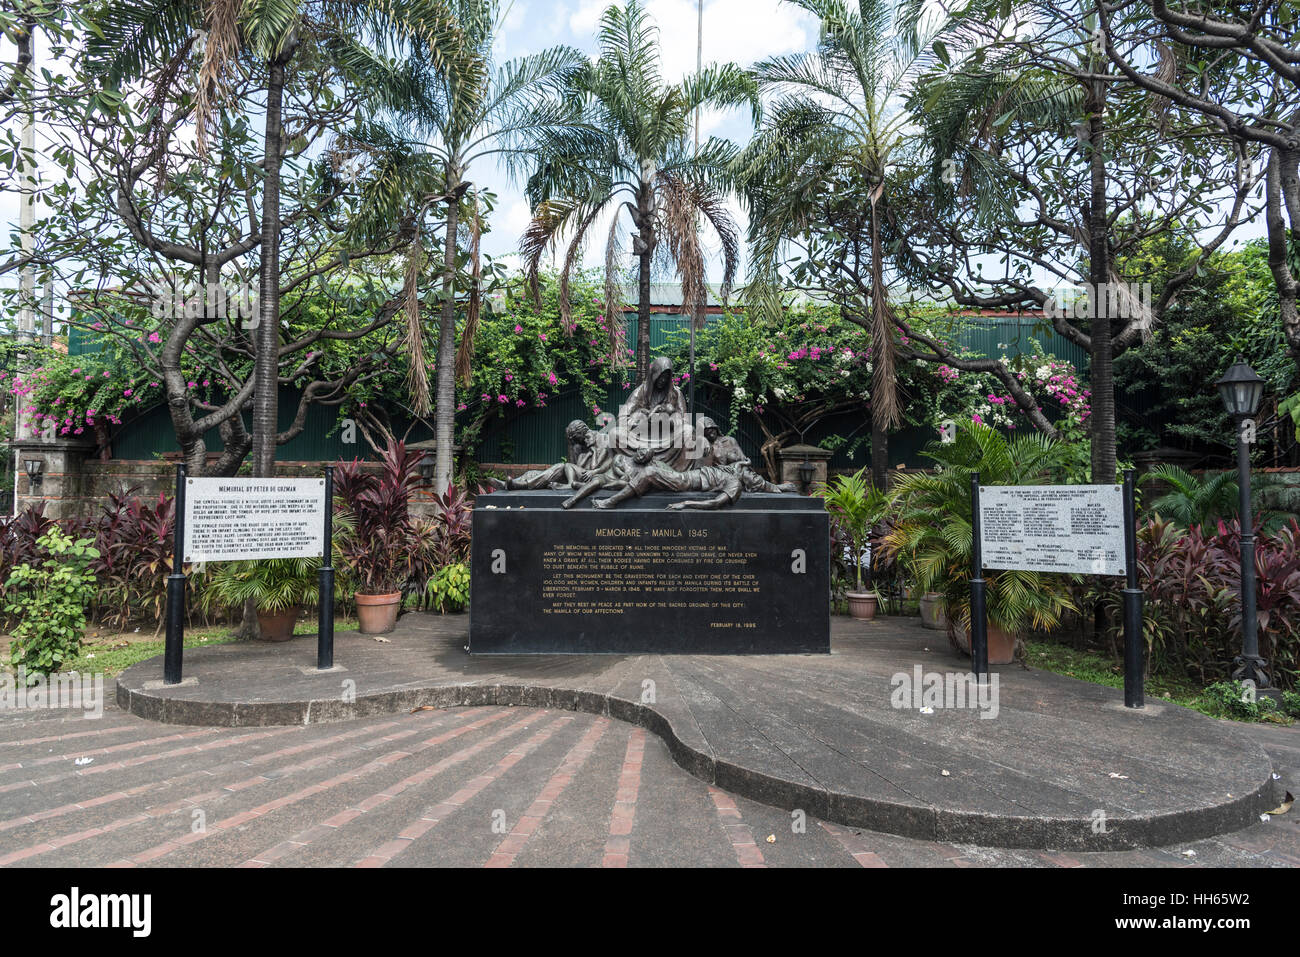 Plaza de Santa Isabel, Intramuros, Manila, Philippines Stock Photo